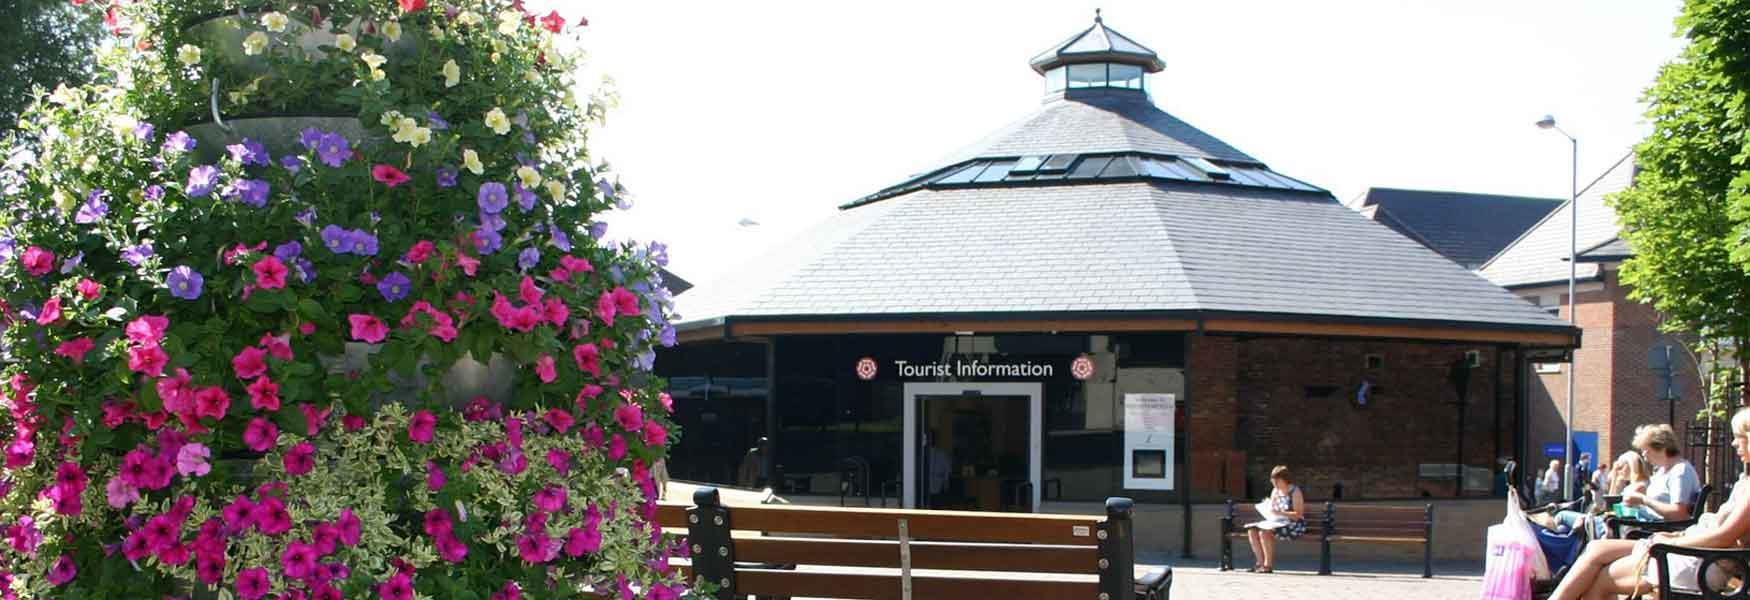 Chesterfield Tourist Information Centre